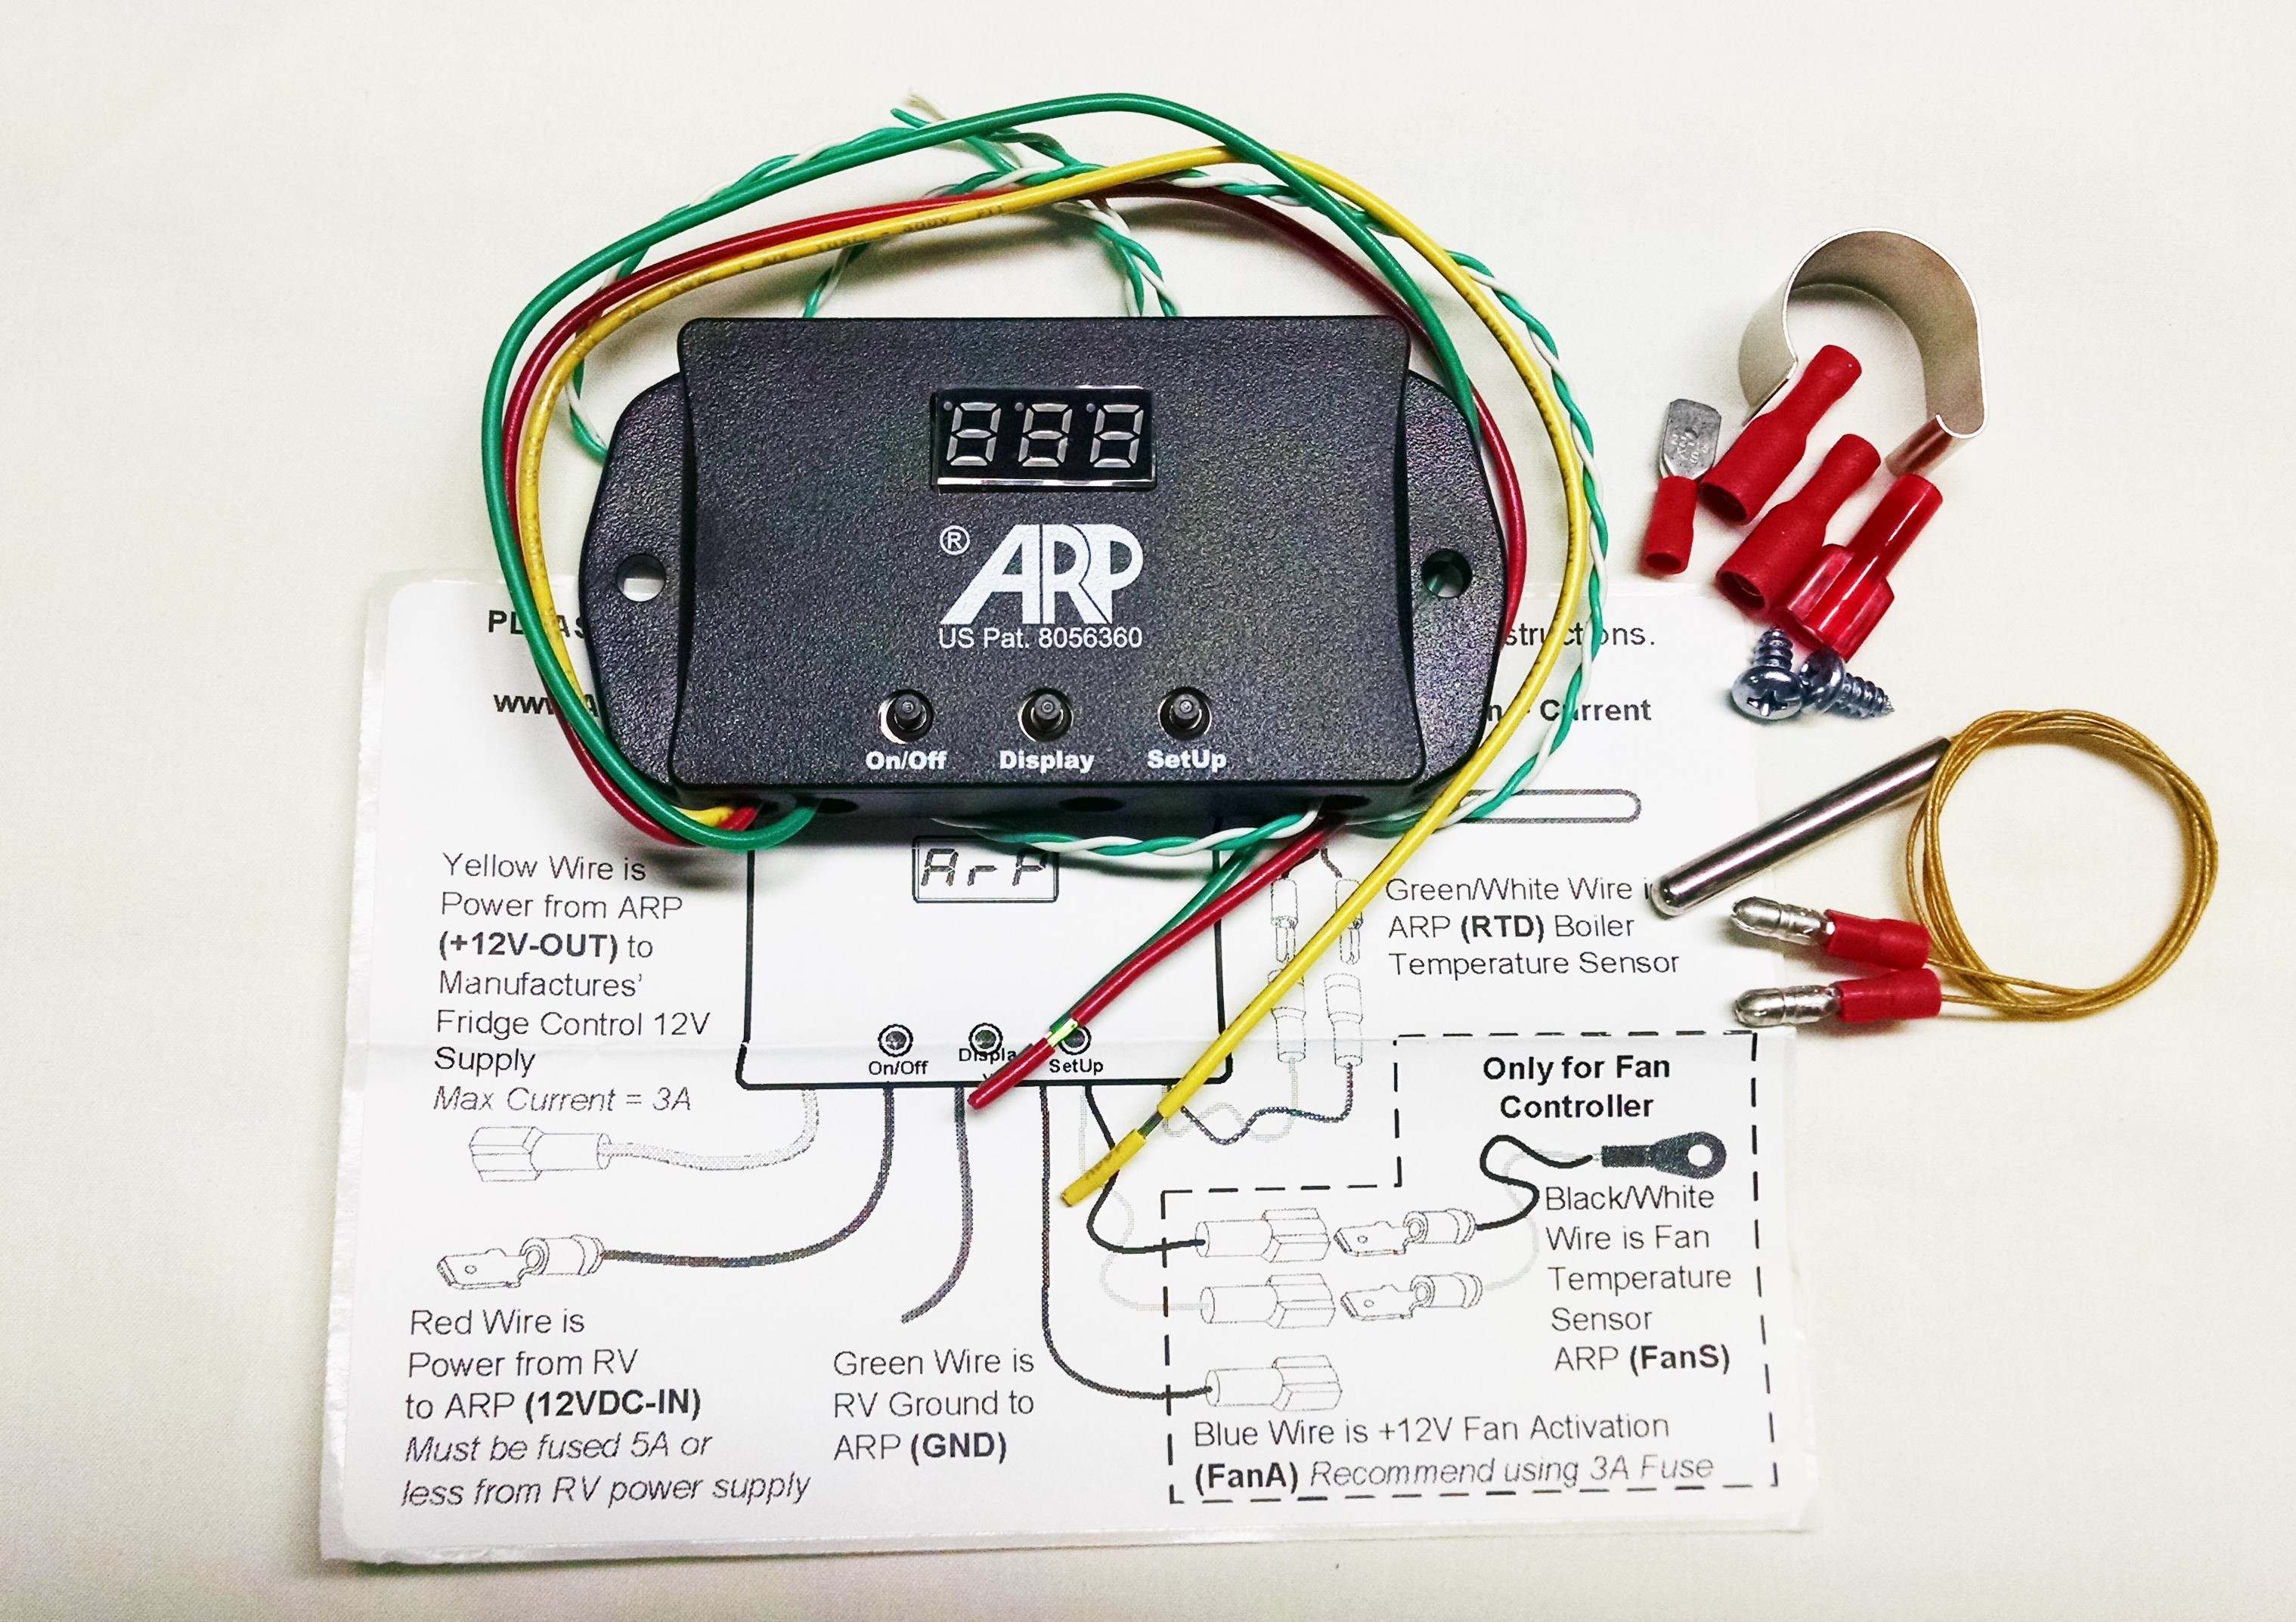 Norcold High Temperature Limit Switch (recall switch) by